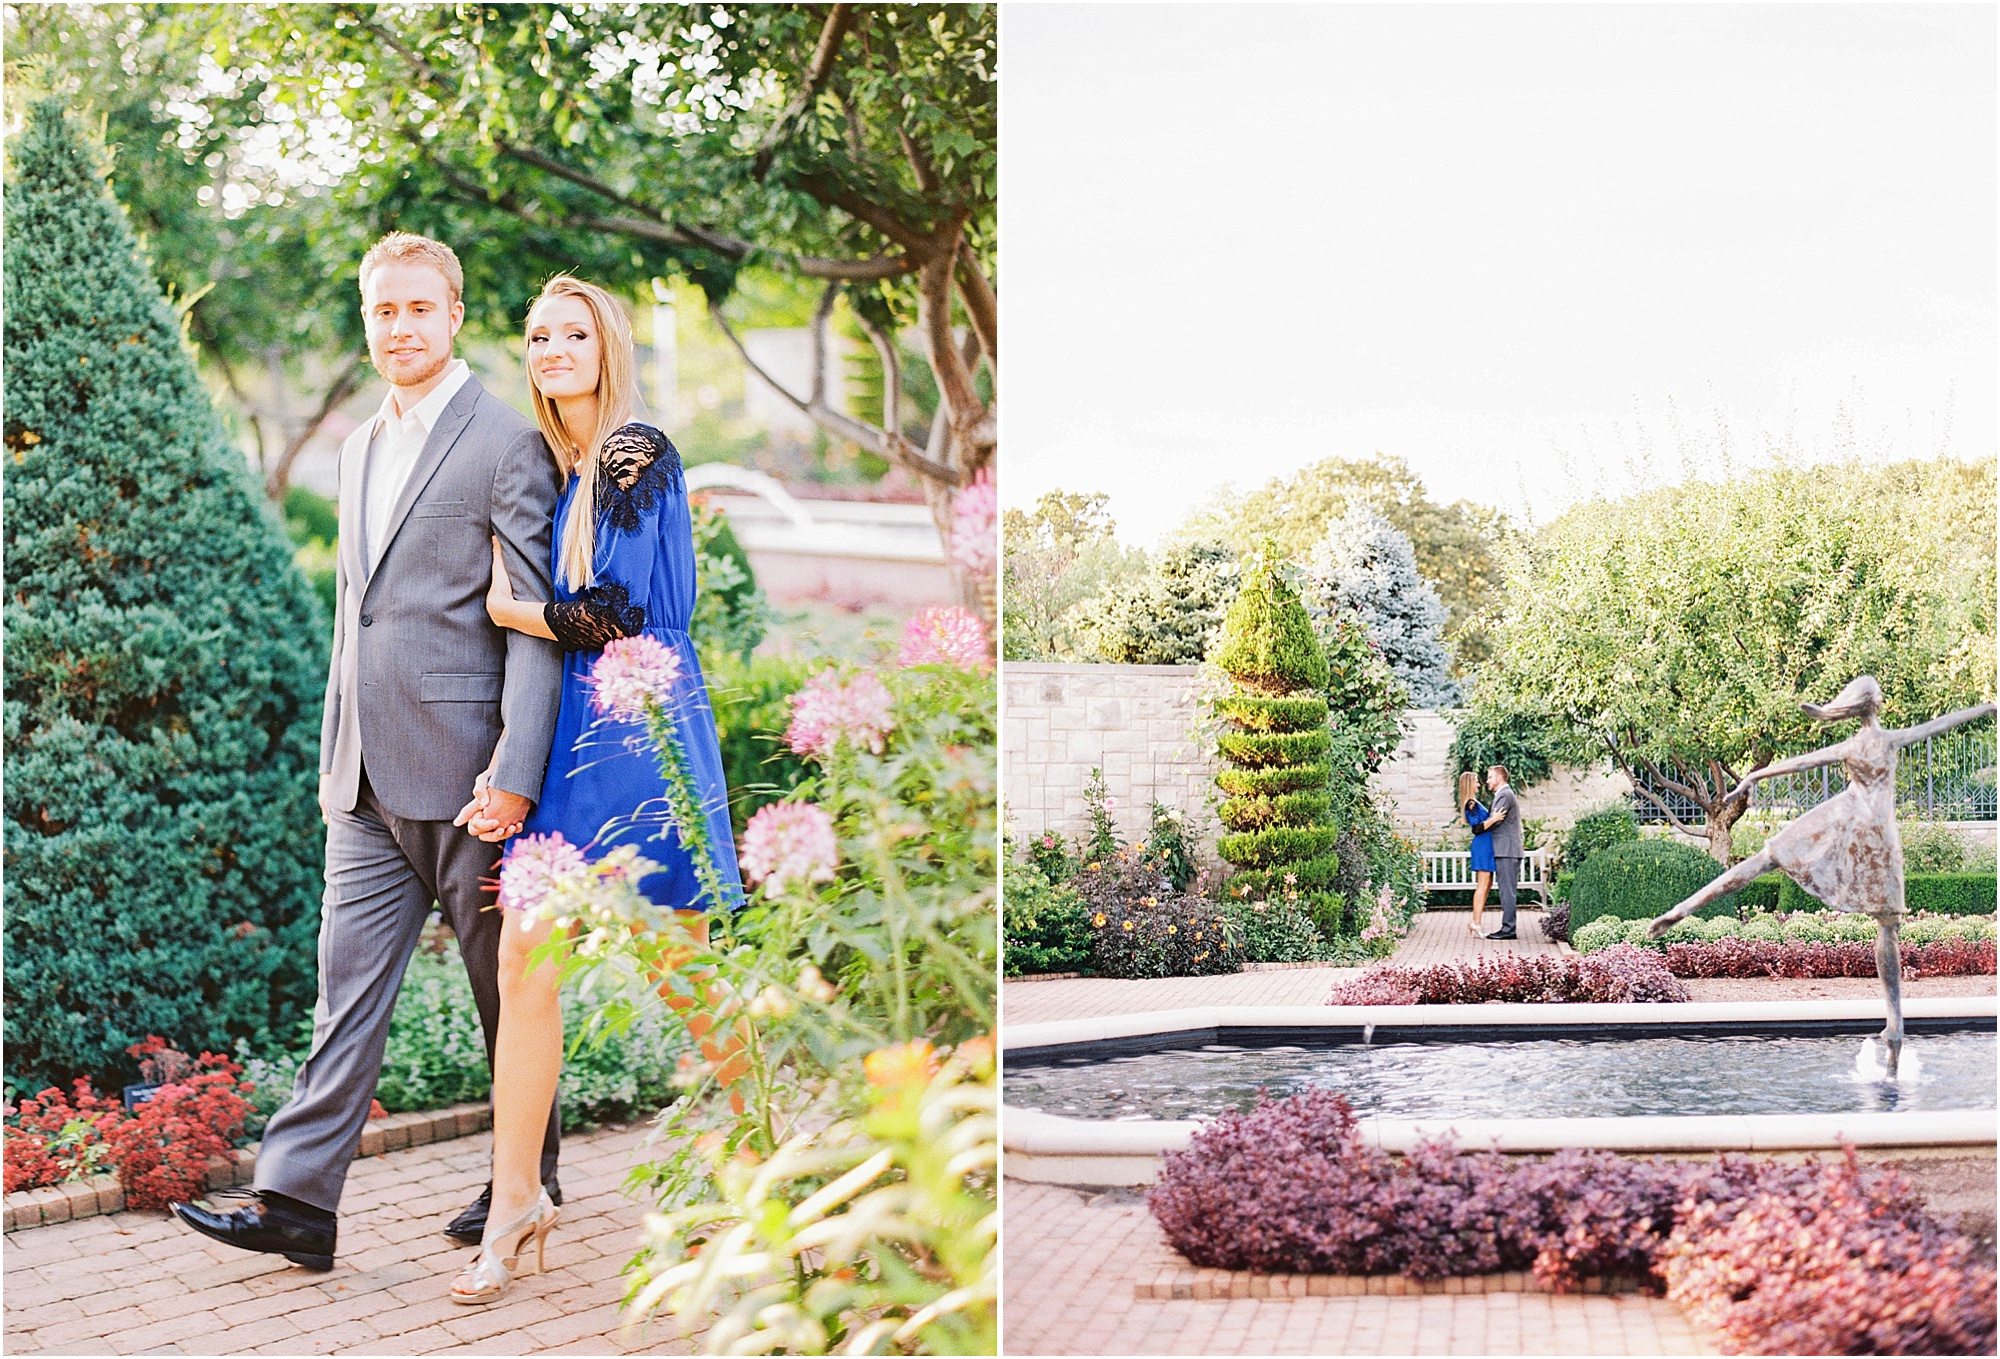 Kansas City Garden Engagement - Jordan Brittley Photography (www.jordanbrittley.com)